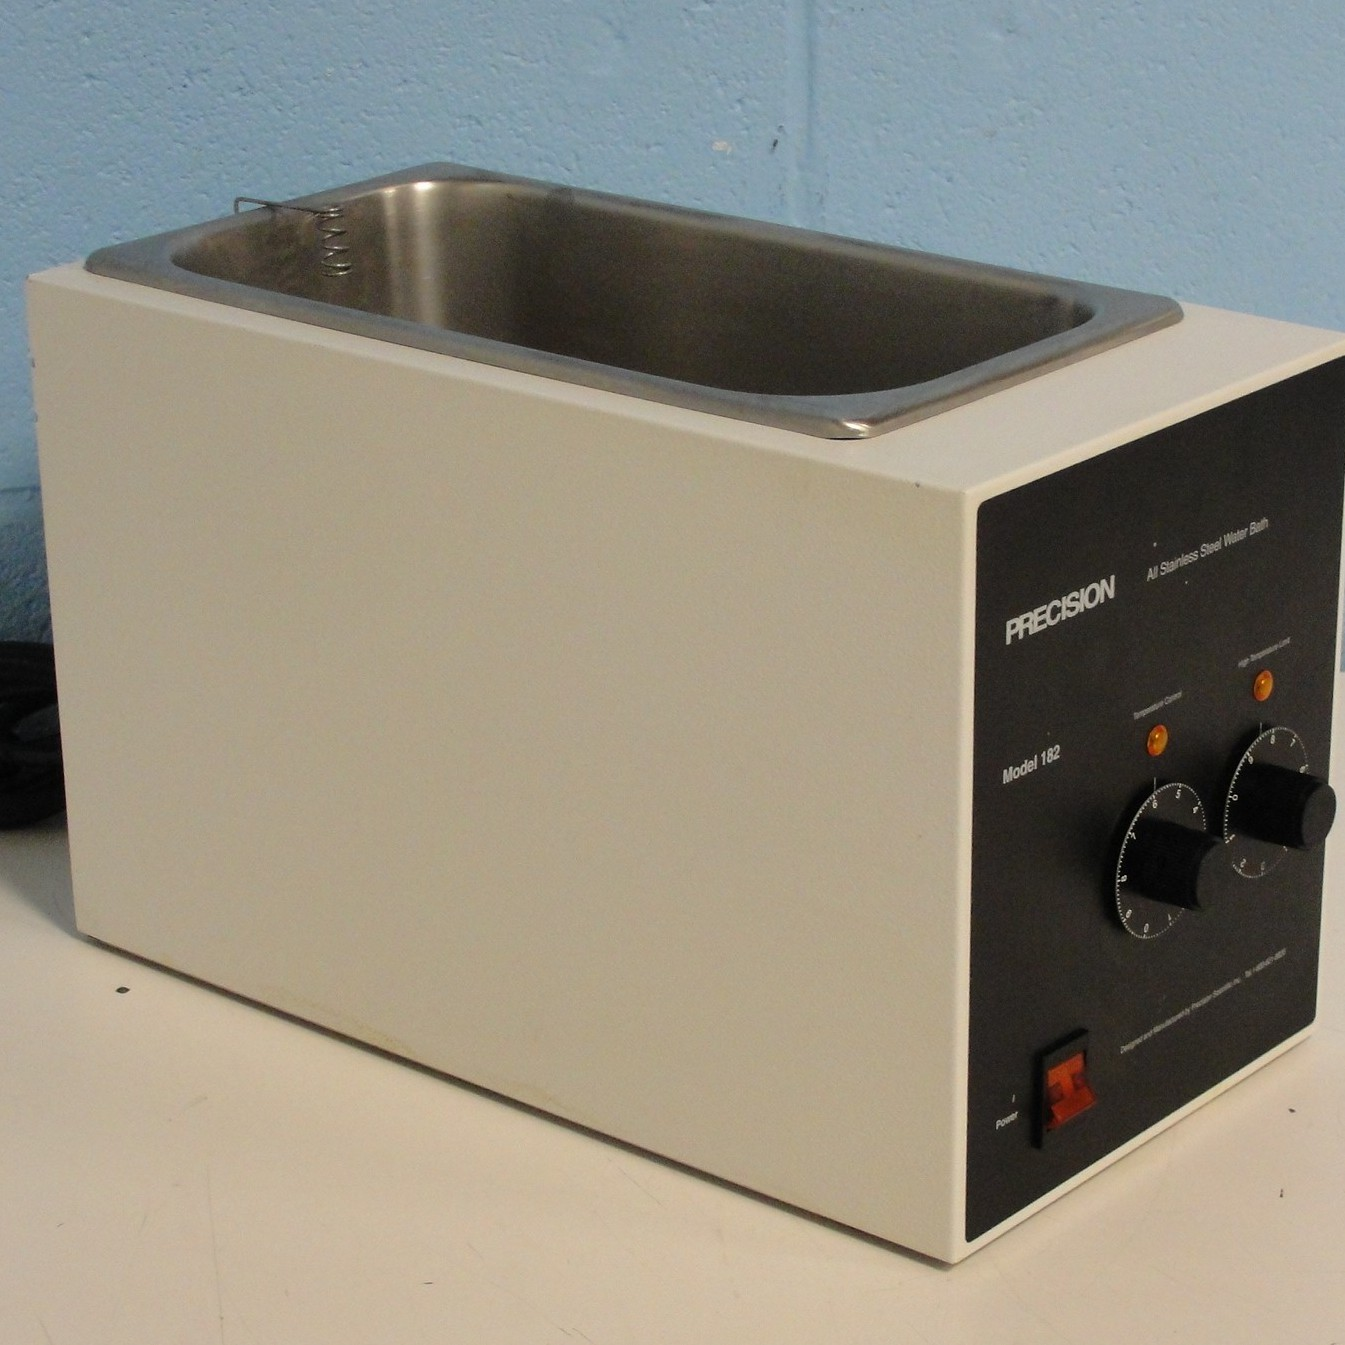 Precision Scientific Model 182 Stainless Steel Water Bath Image